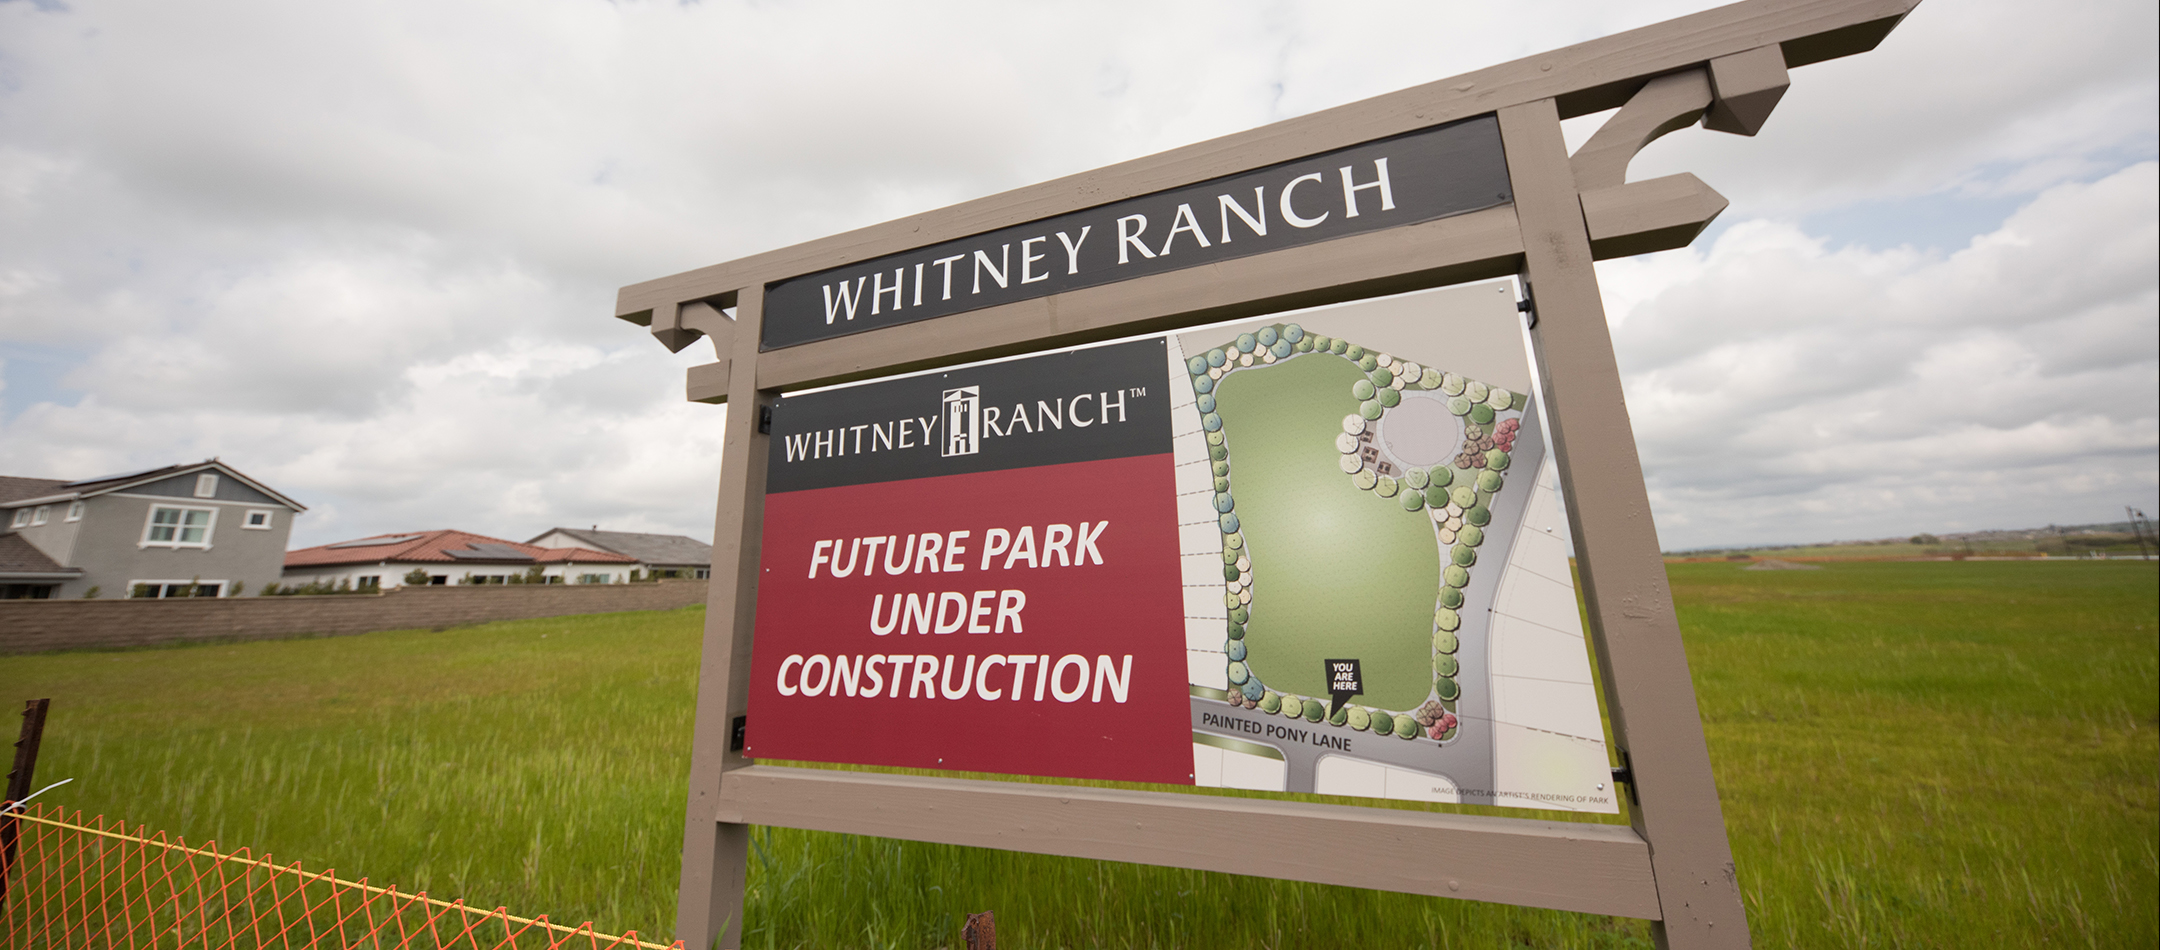 Whitney Ranch future park construction signage